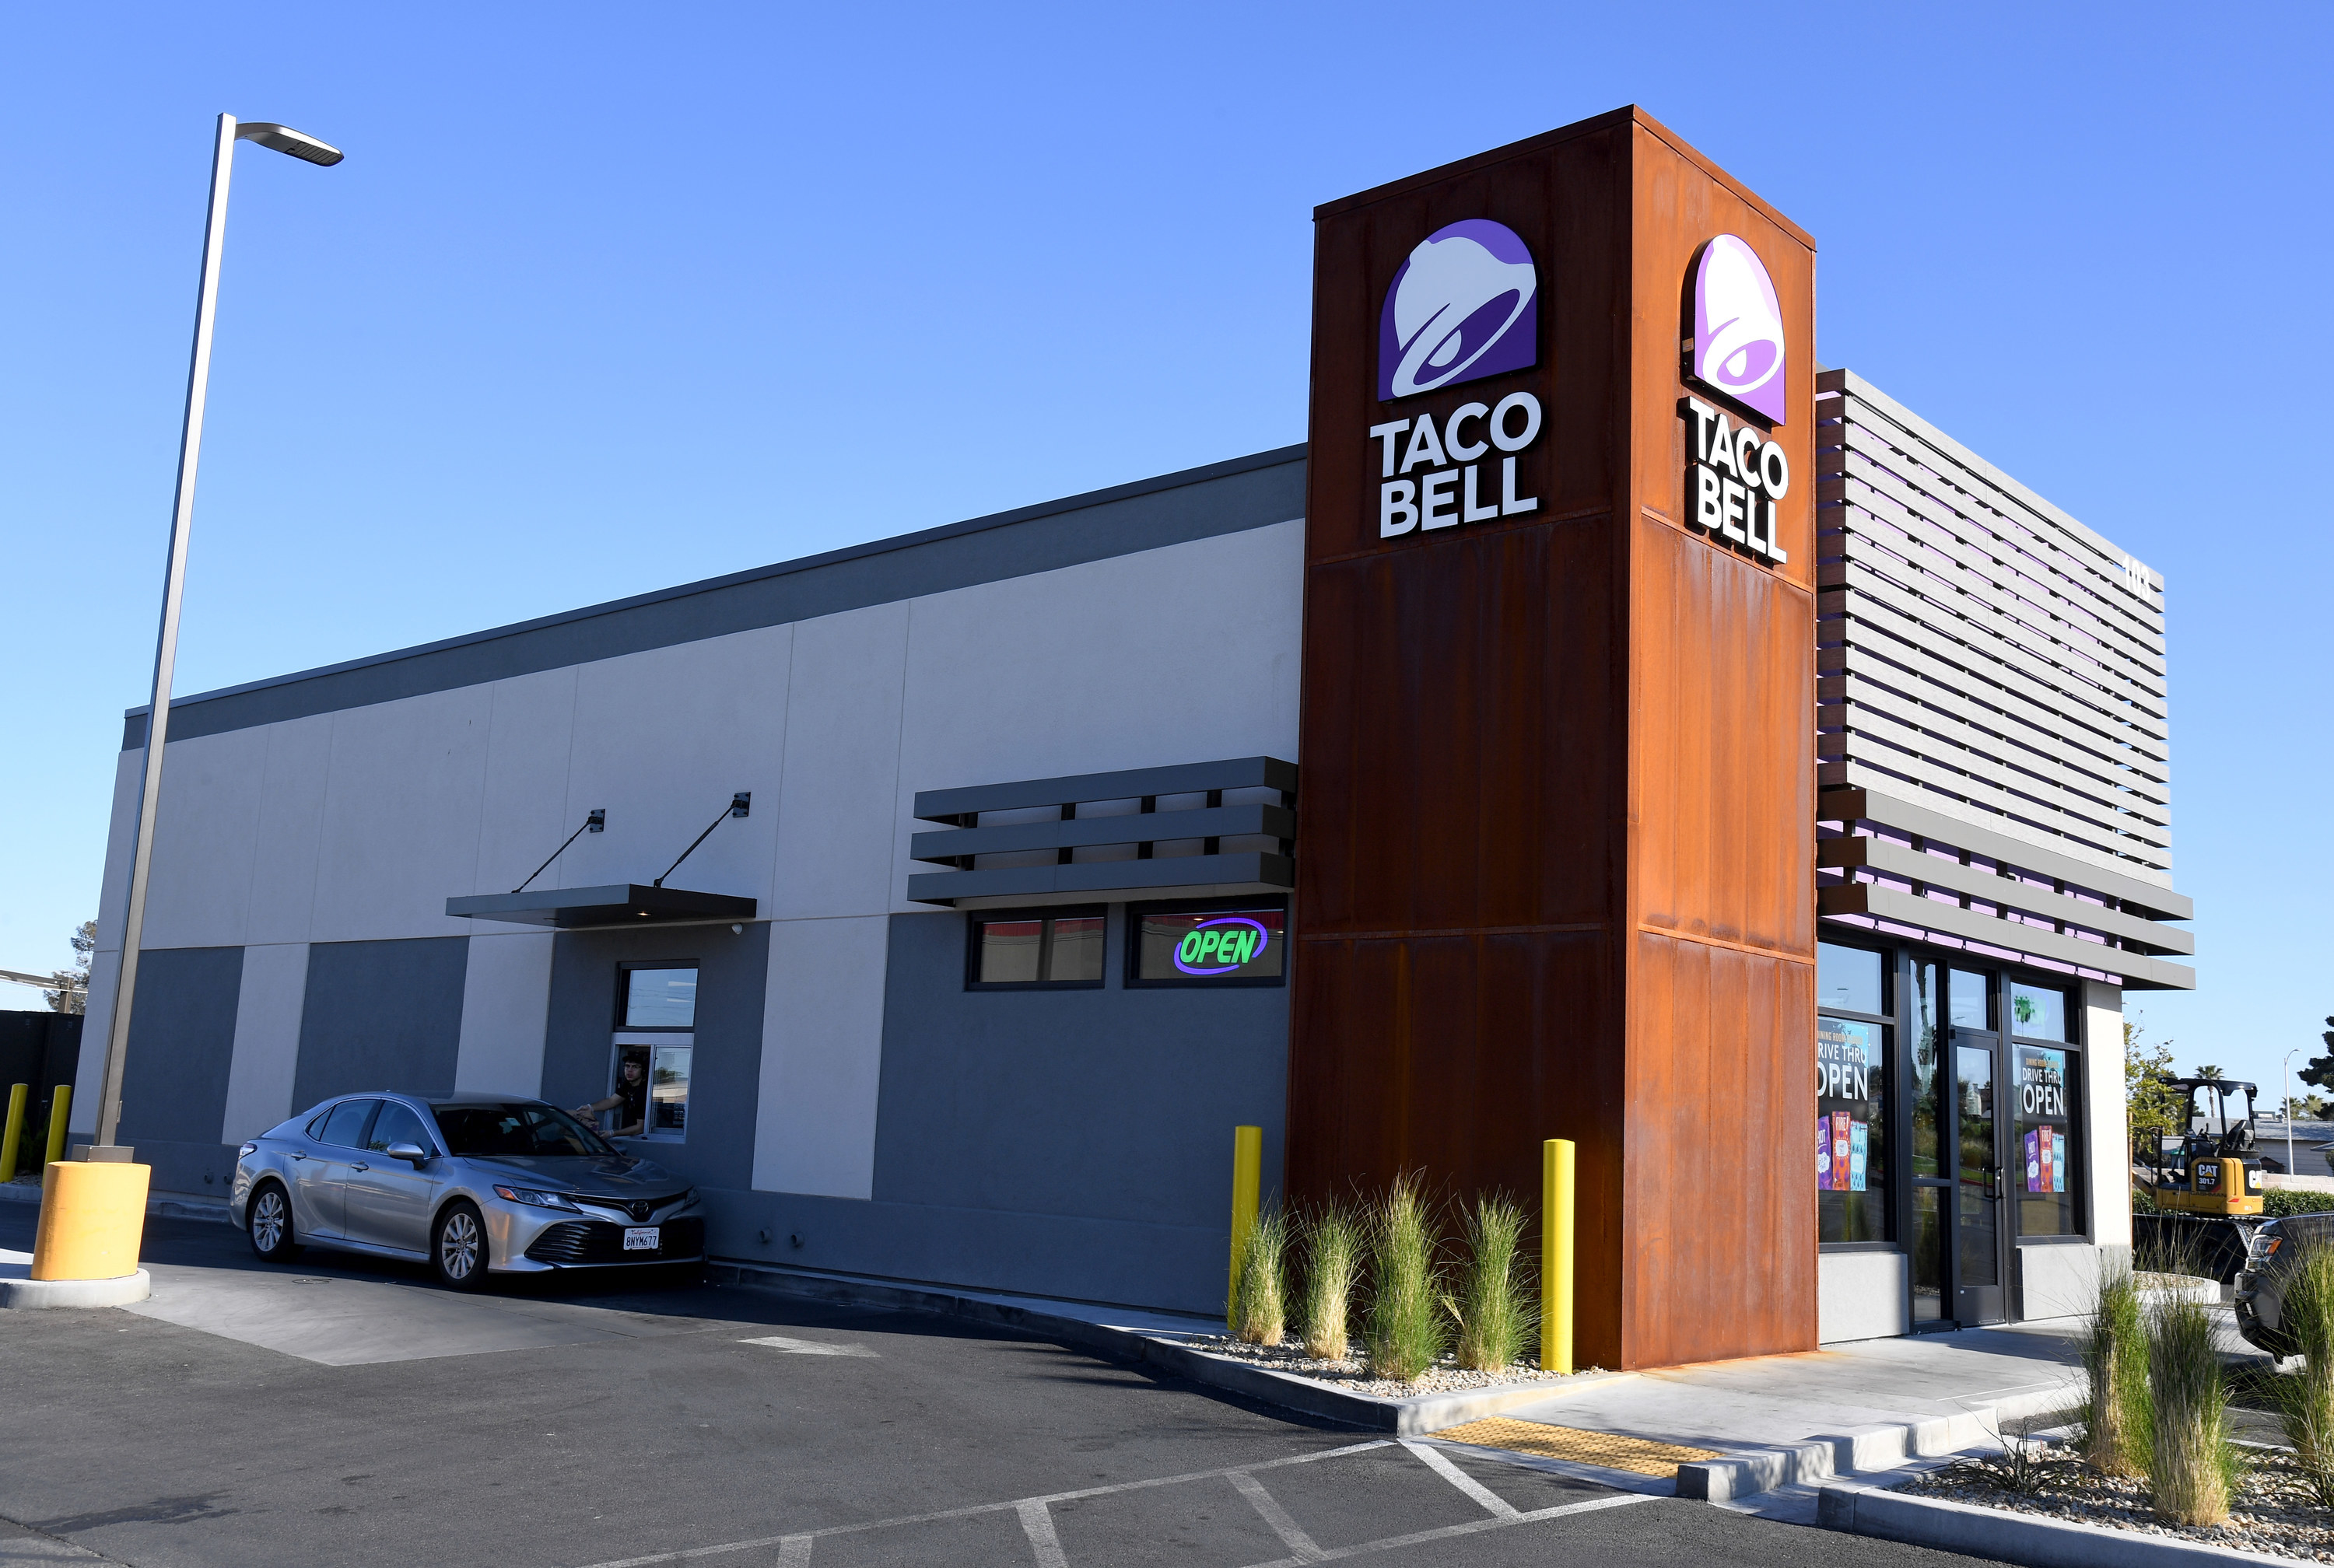 A Taco Bell location in the daylight